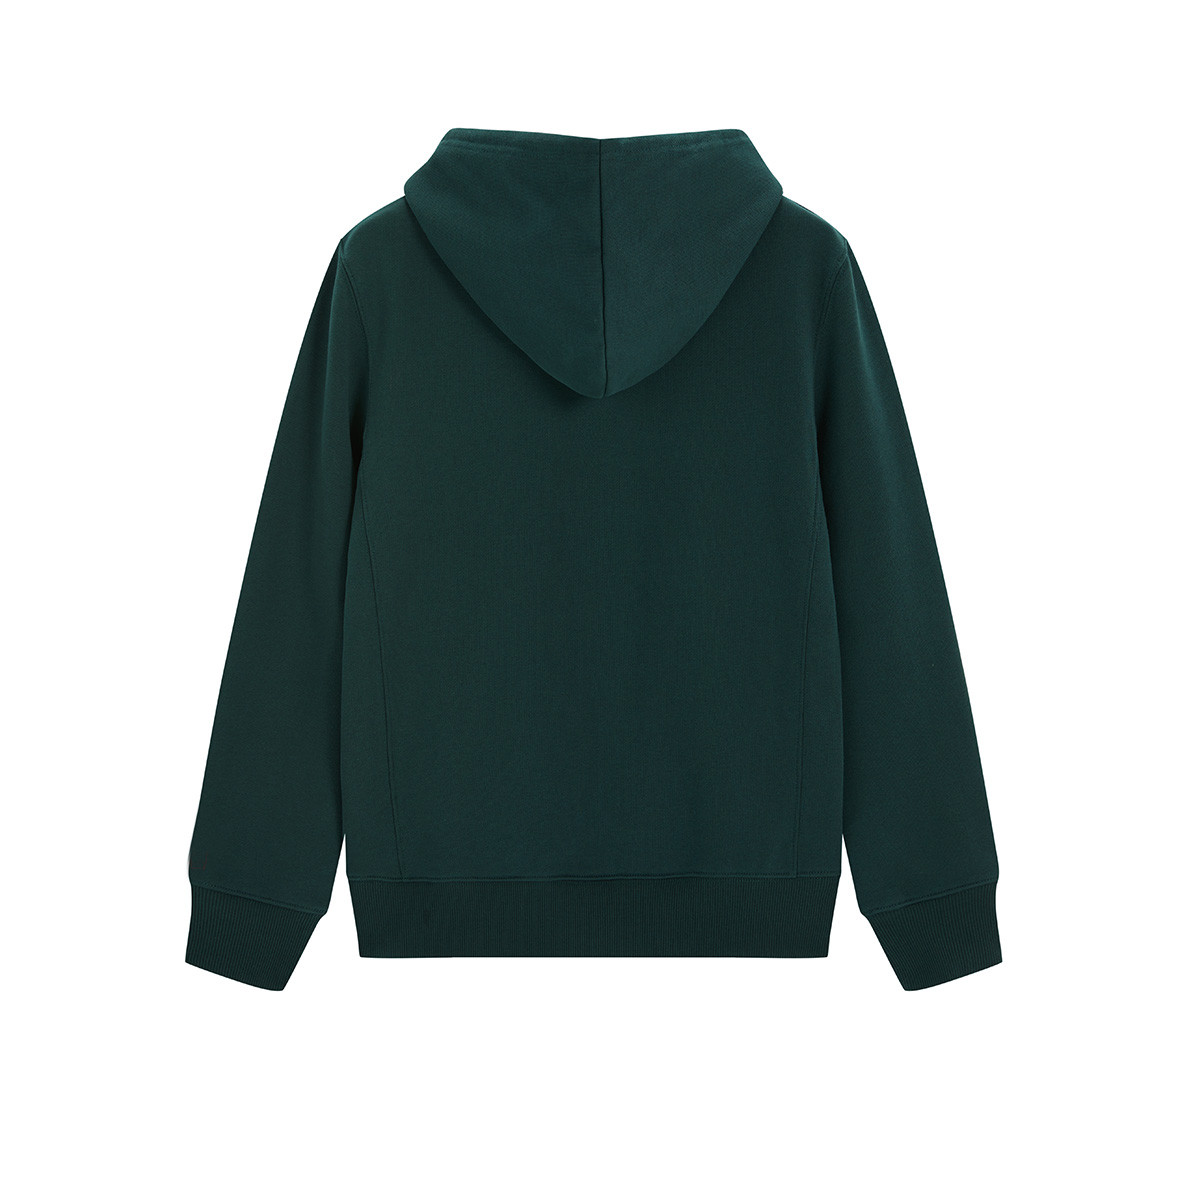 quality sweatshirts for women sweatshirts for women latest low moq sweater